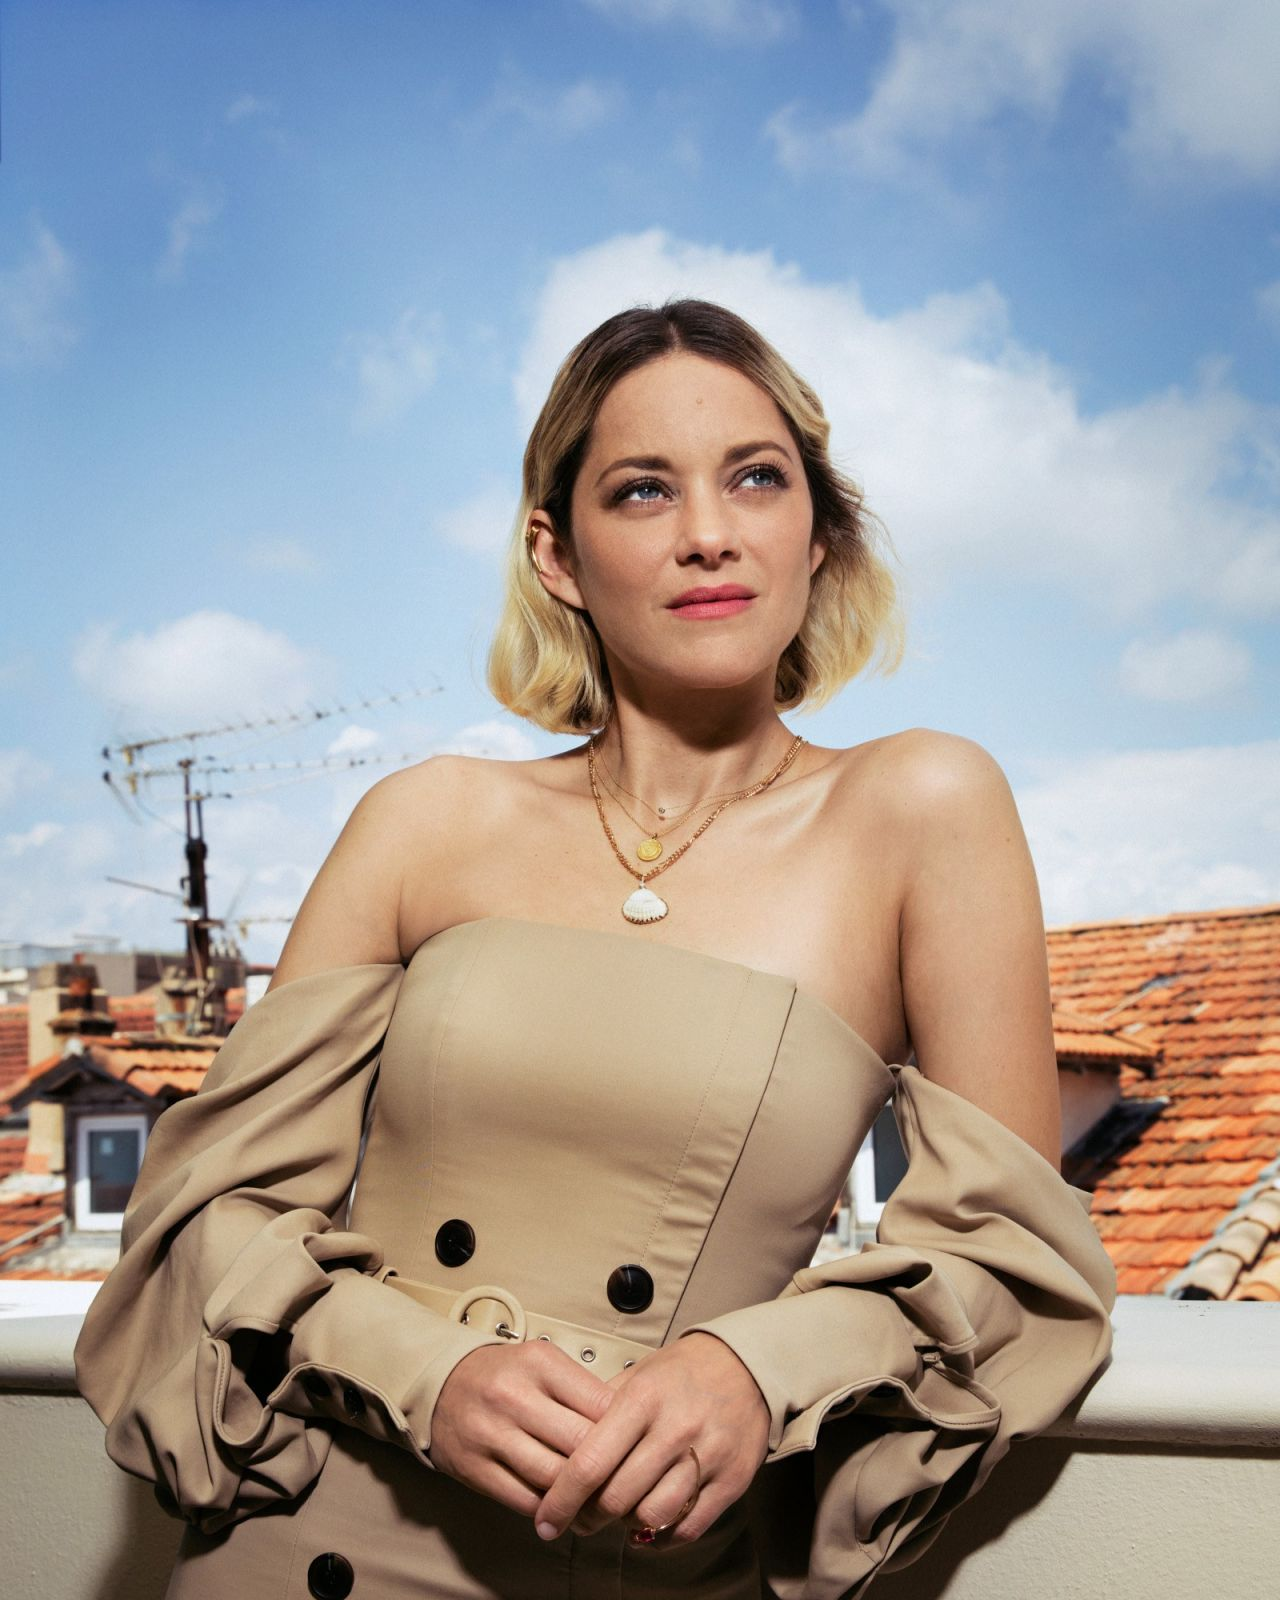 http://celebmafia.com/wp-content/uploads/2018/05/marion-cotillard-photographed-in-cannes-for-vanity-fair-may-2018-1.jpg